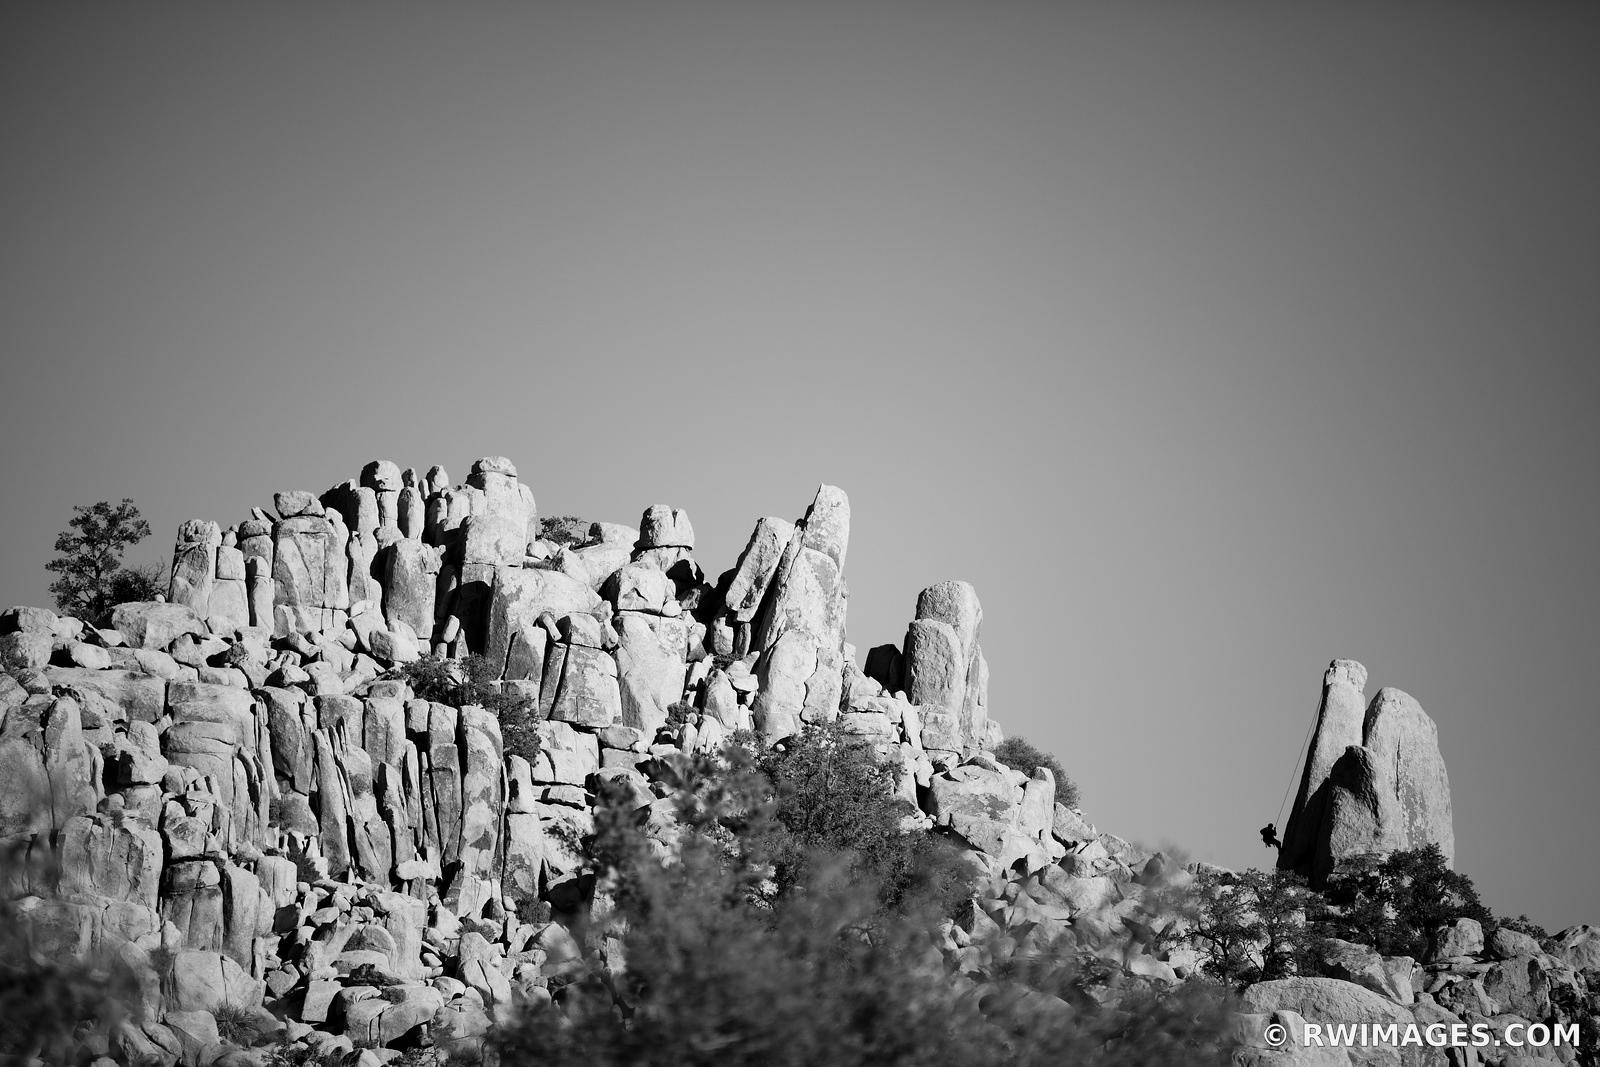 ROCK CLIMBING HIDDEN VALLEY JOSHUA TREE NATIONAL PARK BLACK AND WHITE